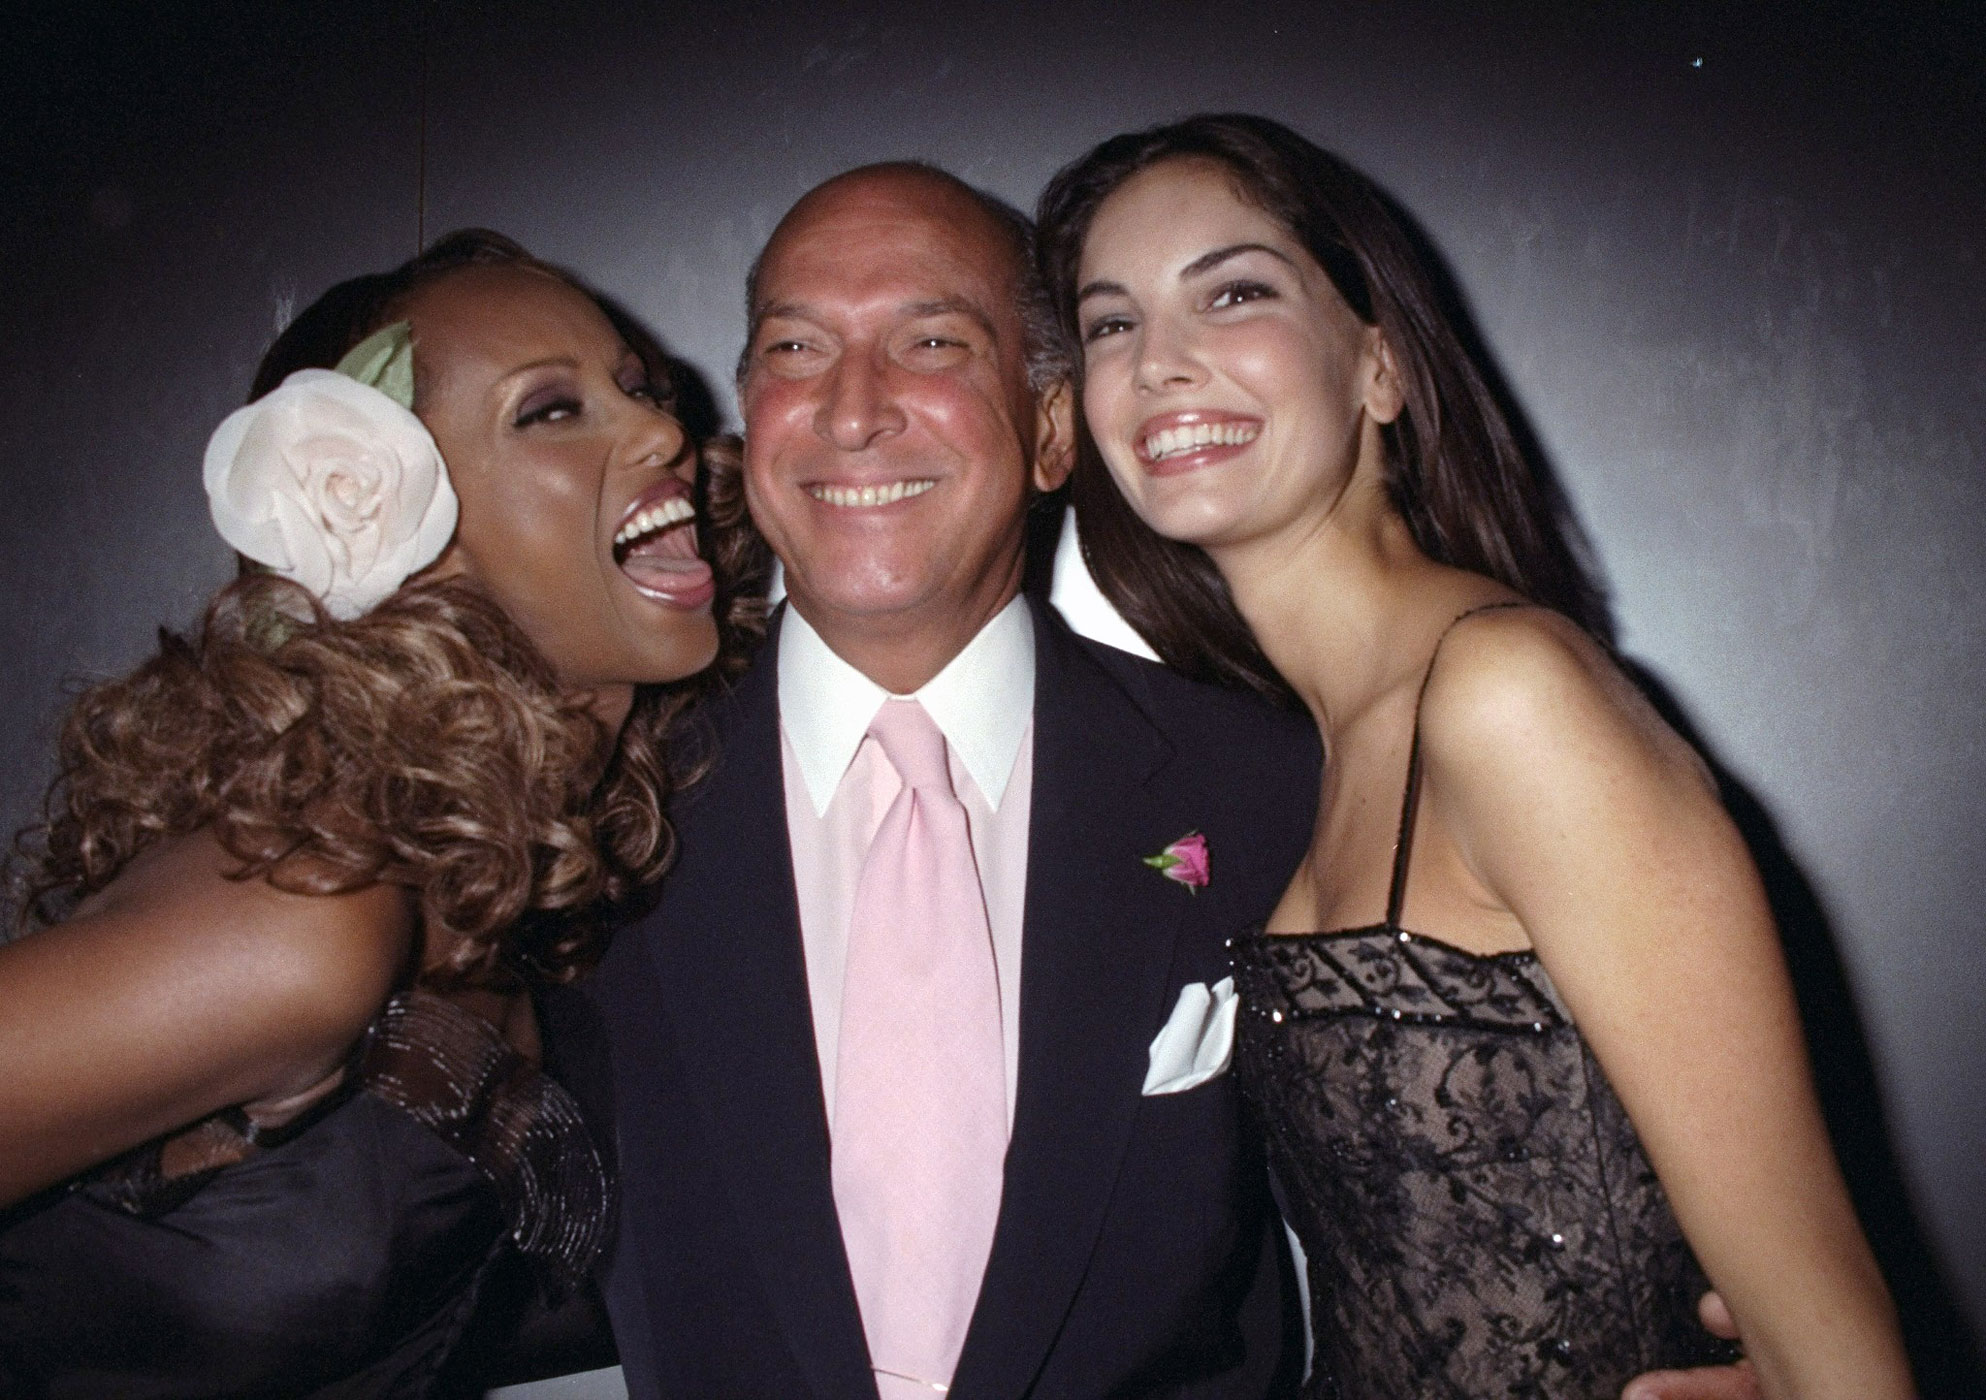 Oscar de la Renta is flanked by models Iman (left) and Eugenia at a party at the Copacabana to launch his new perfume in September 1997.